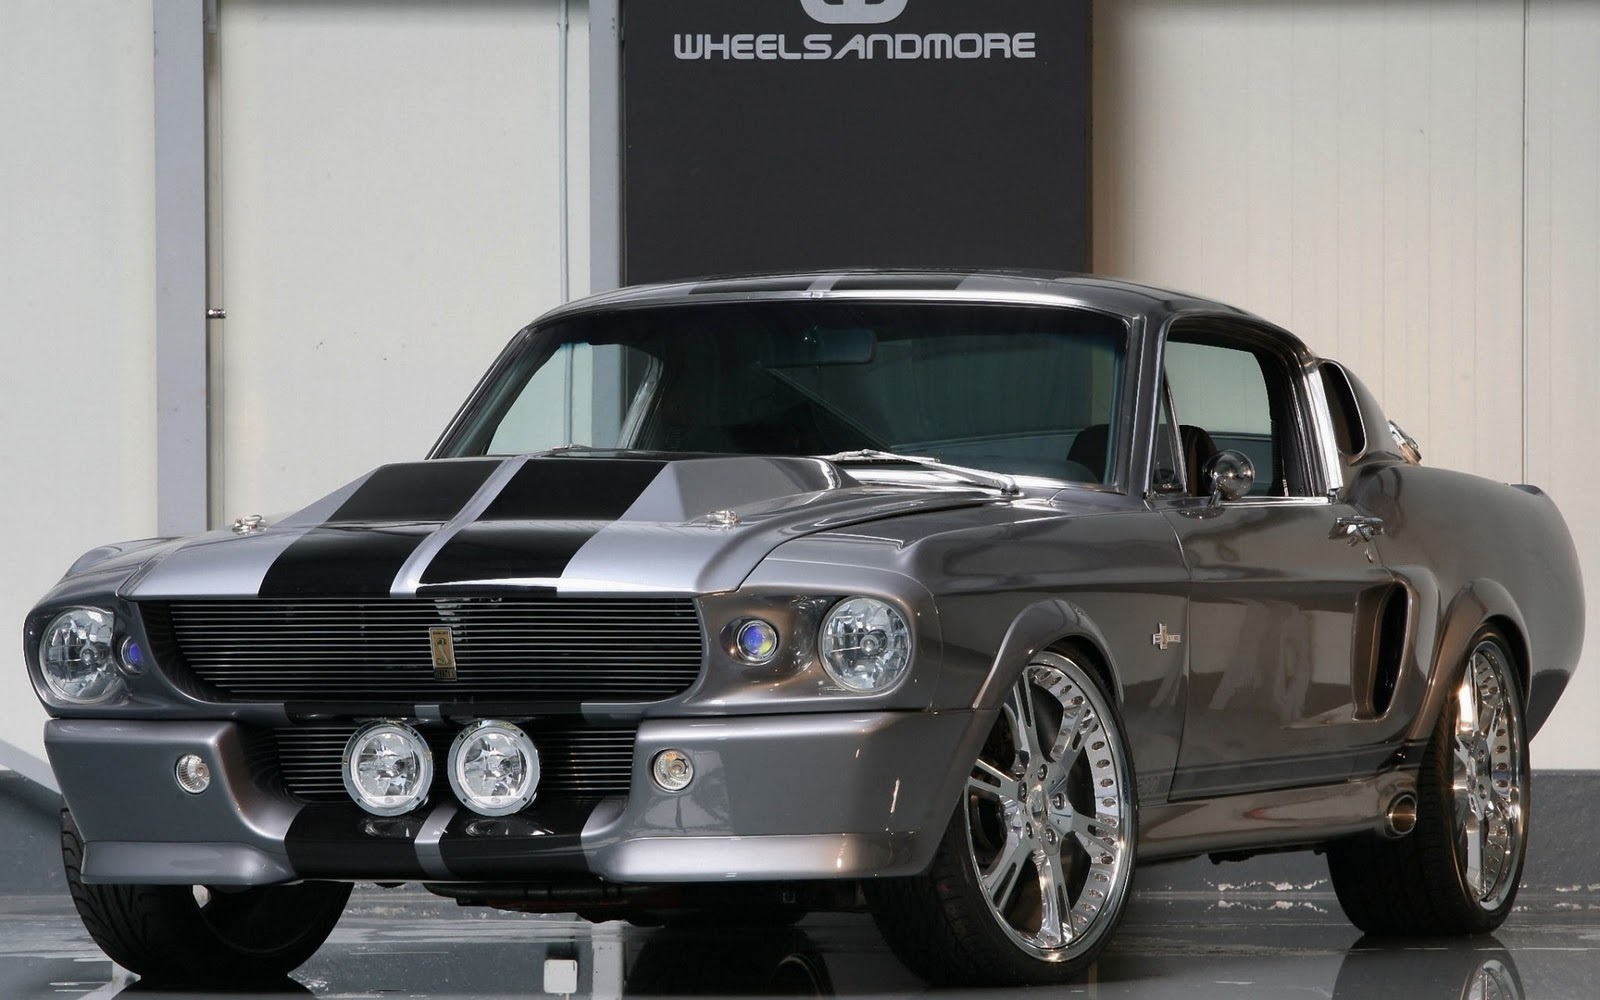 Cool cars wallpapers for desktopCool cars pictures for desktopCool 1600x1000